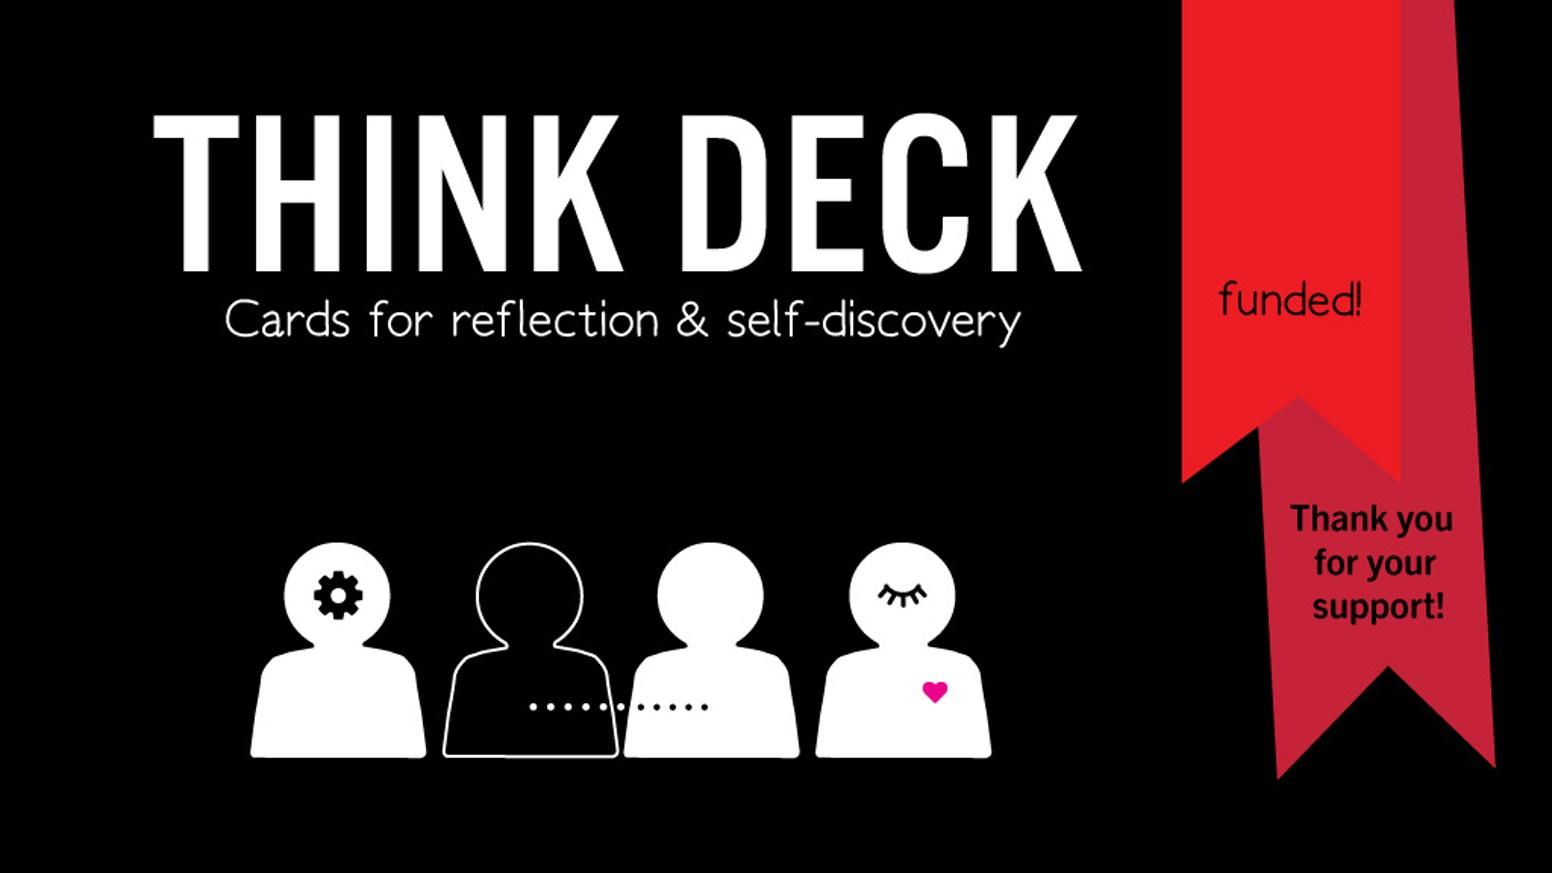 THINK DECK is a toolkit for reflection and self-discovery with sixty thought-provoking questions and a journaling exercise.